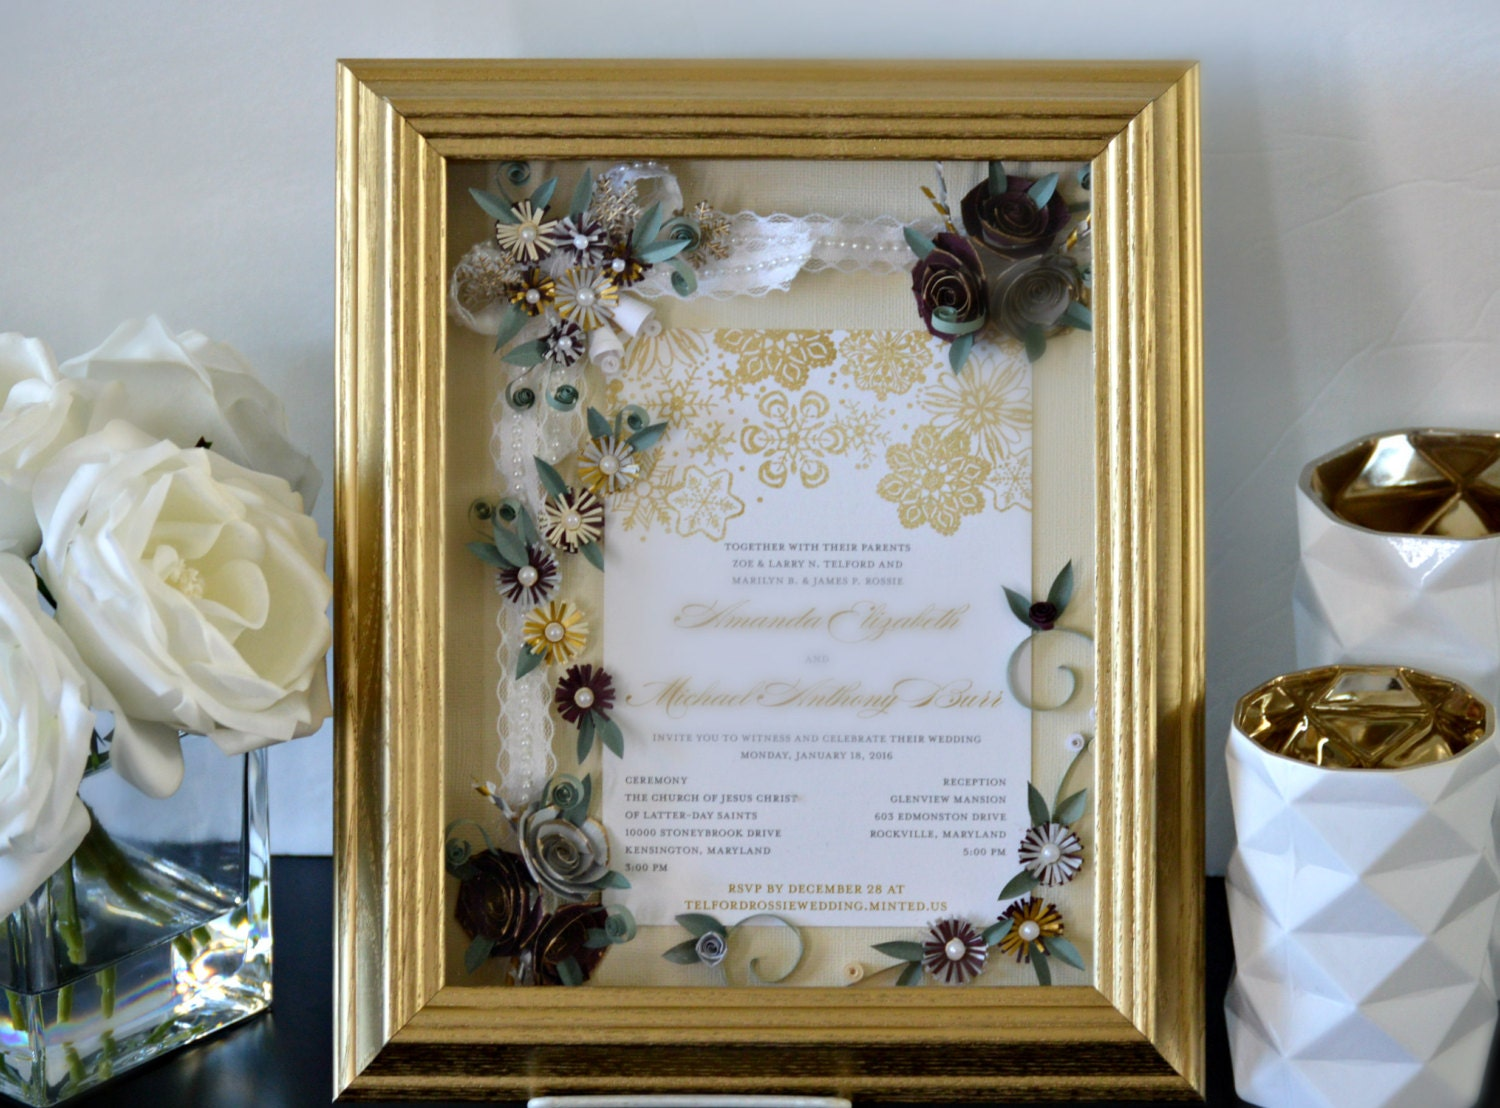 Wedding Invitation Gifts: Custom Wedding Invitation Framed Wedding